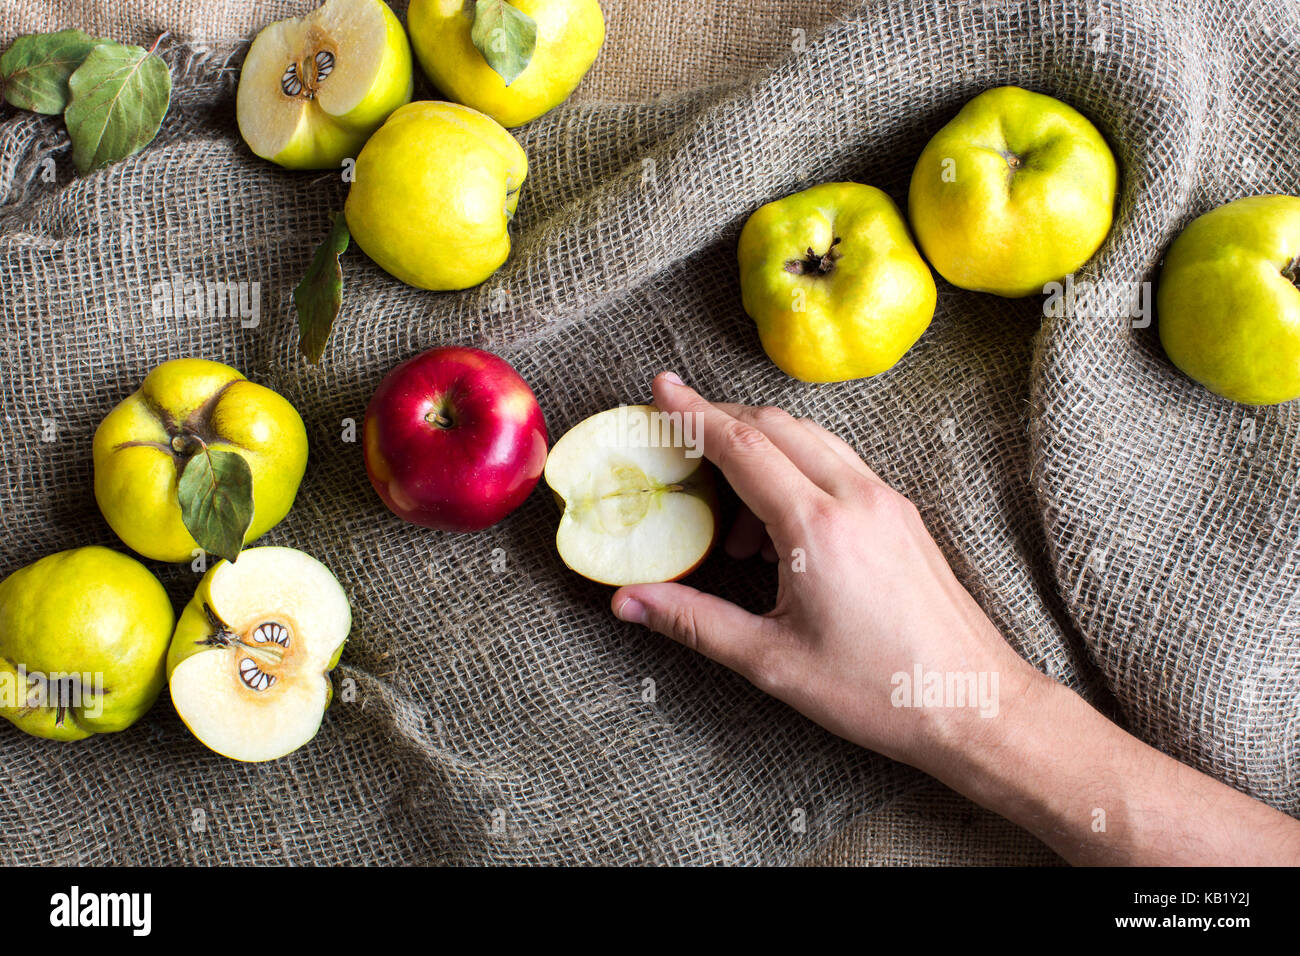 autumn, harvest, food concept. on the grey textured fabrick of sack there are lots of fruits, green and yellow quinces, - Stock Image